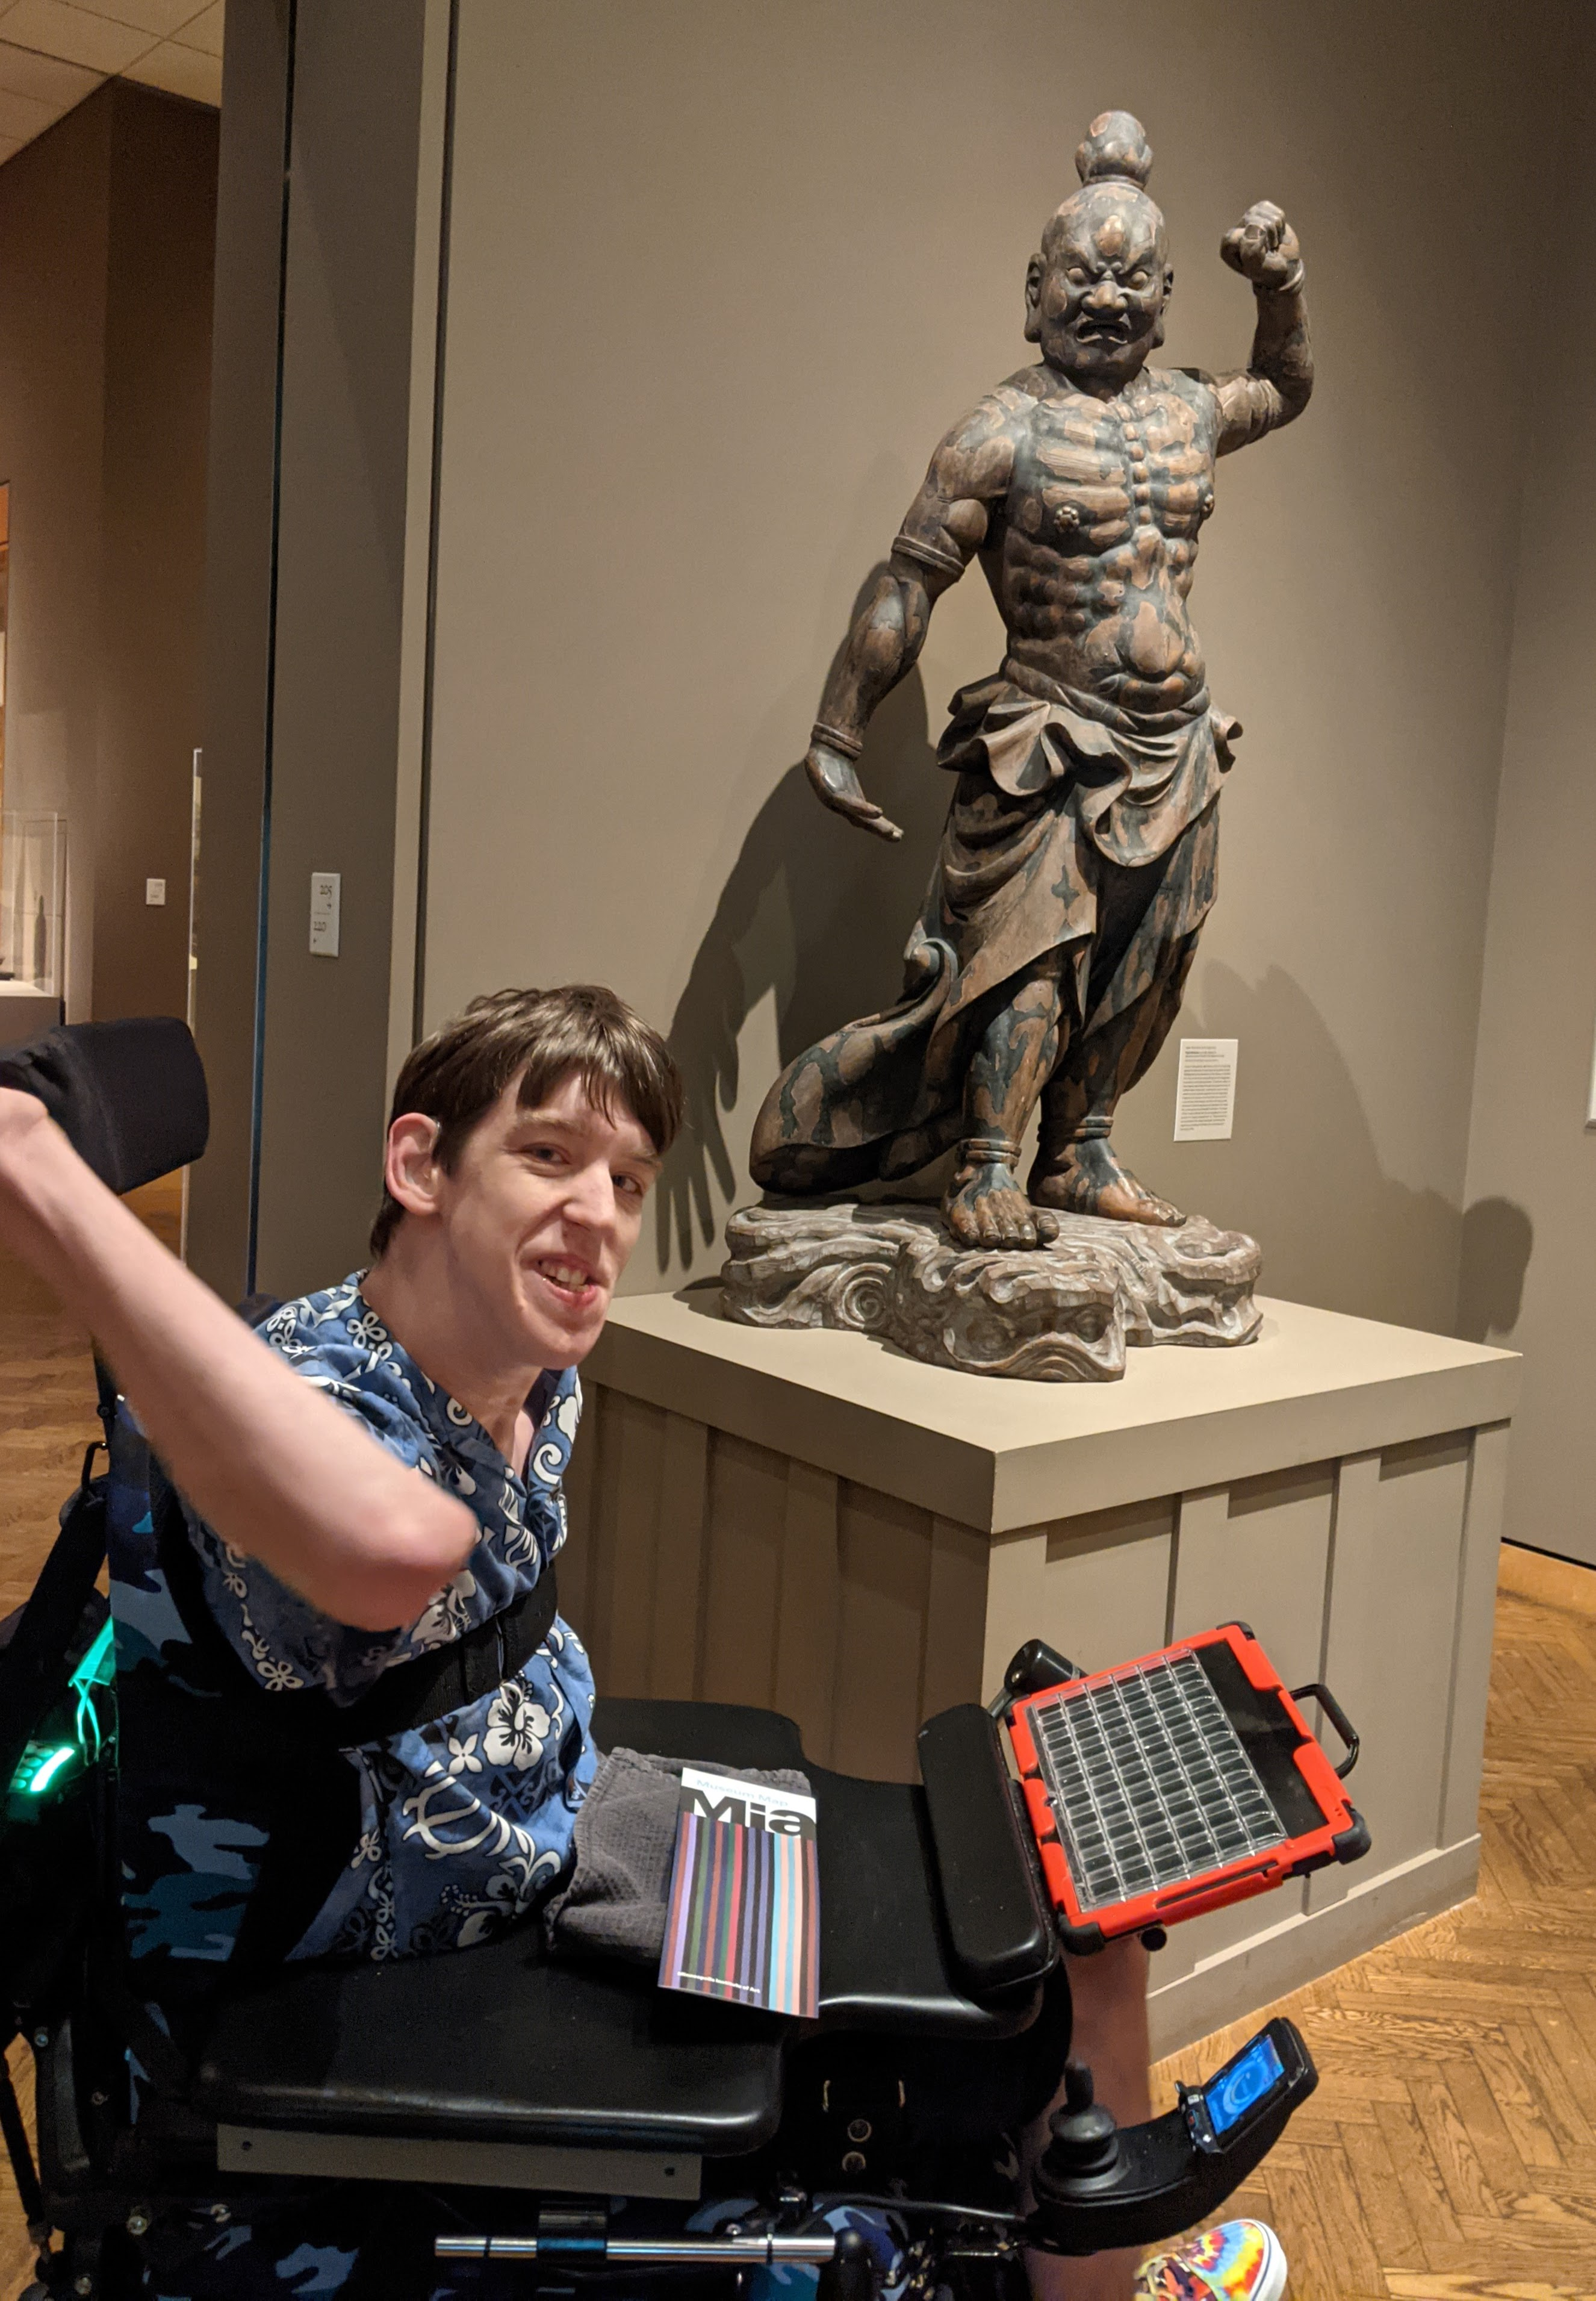 Justin in wheelchair holding up fist and grimacing similar to Japanese Vajra Warrior sculpture